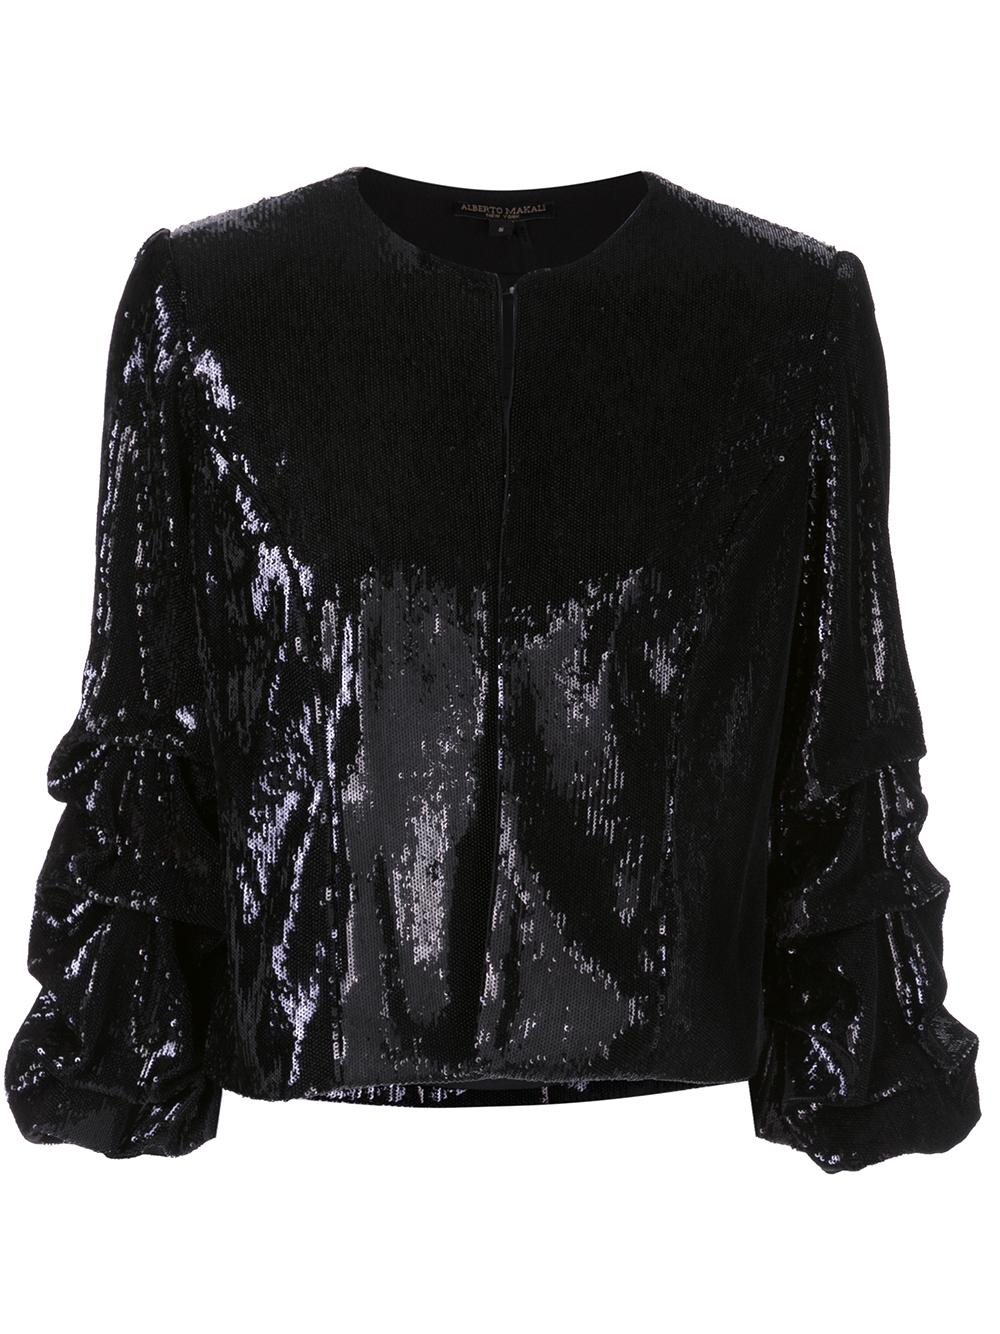 Sequin Jacket With Rouched Sleeves